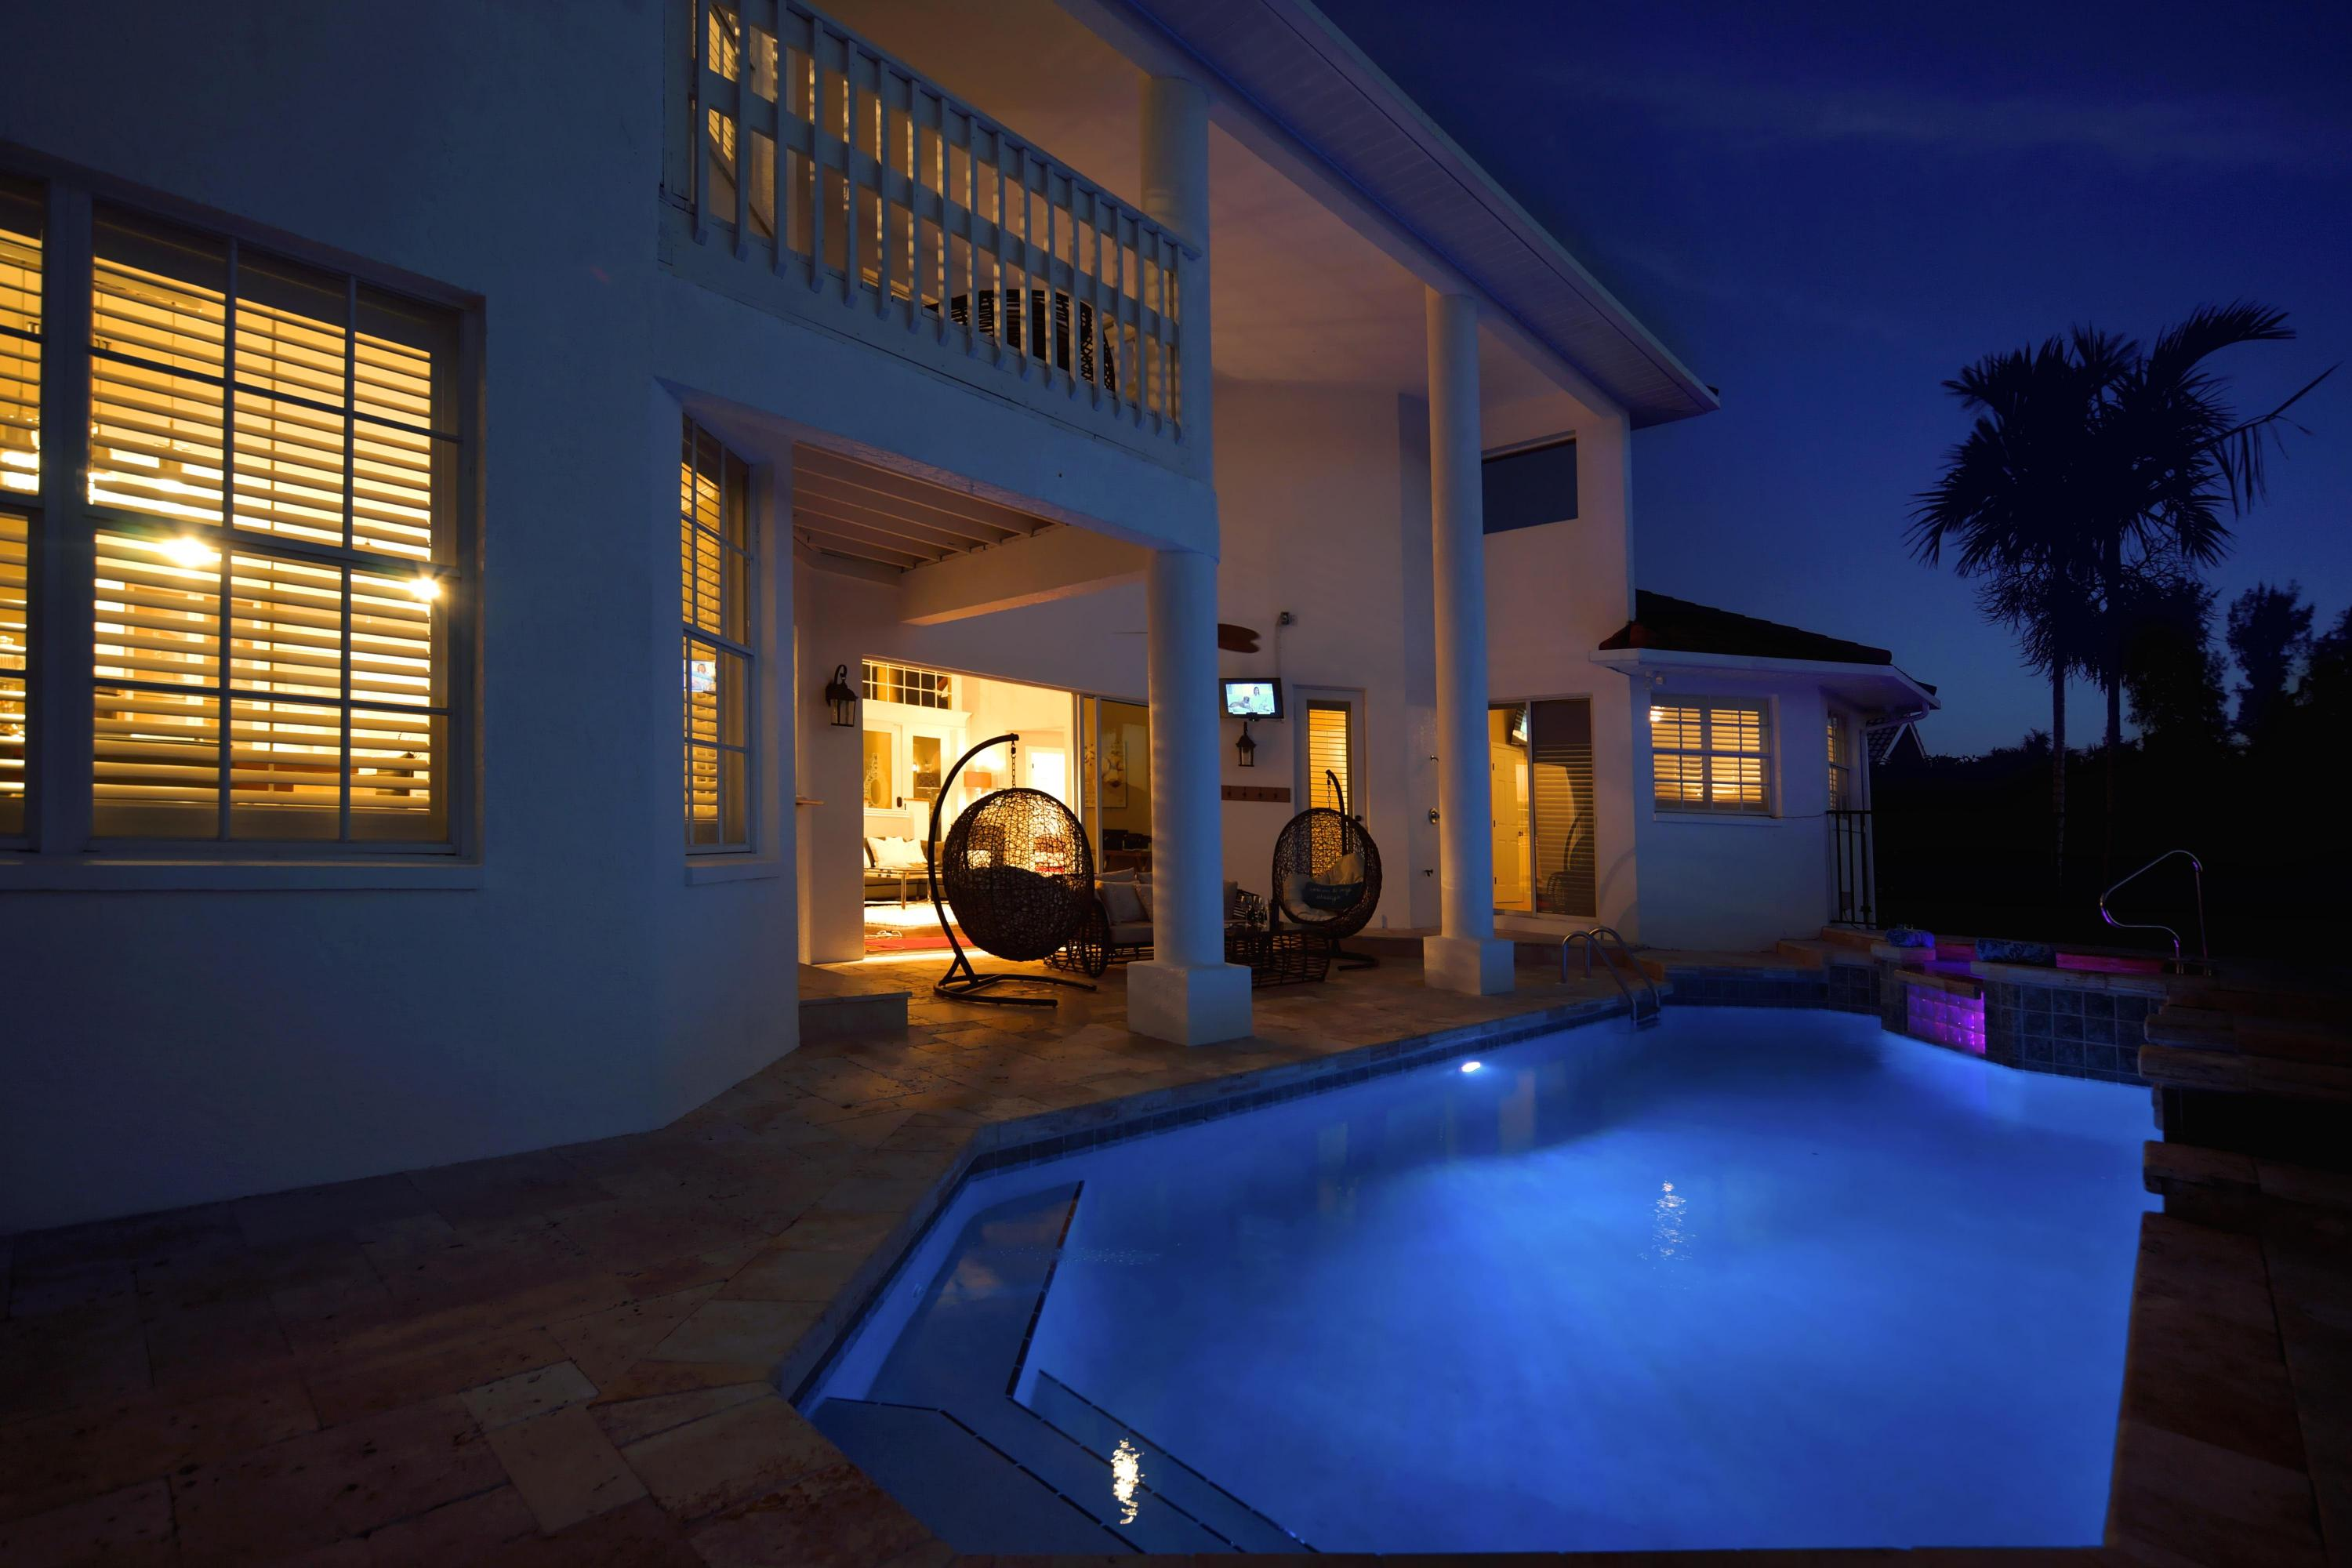 night-pool-in1.jpg